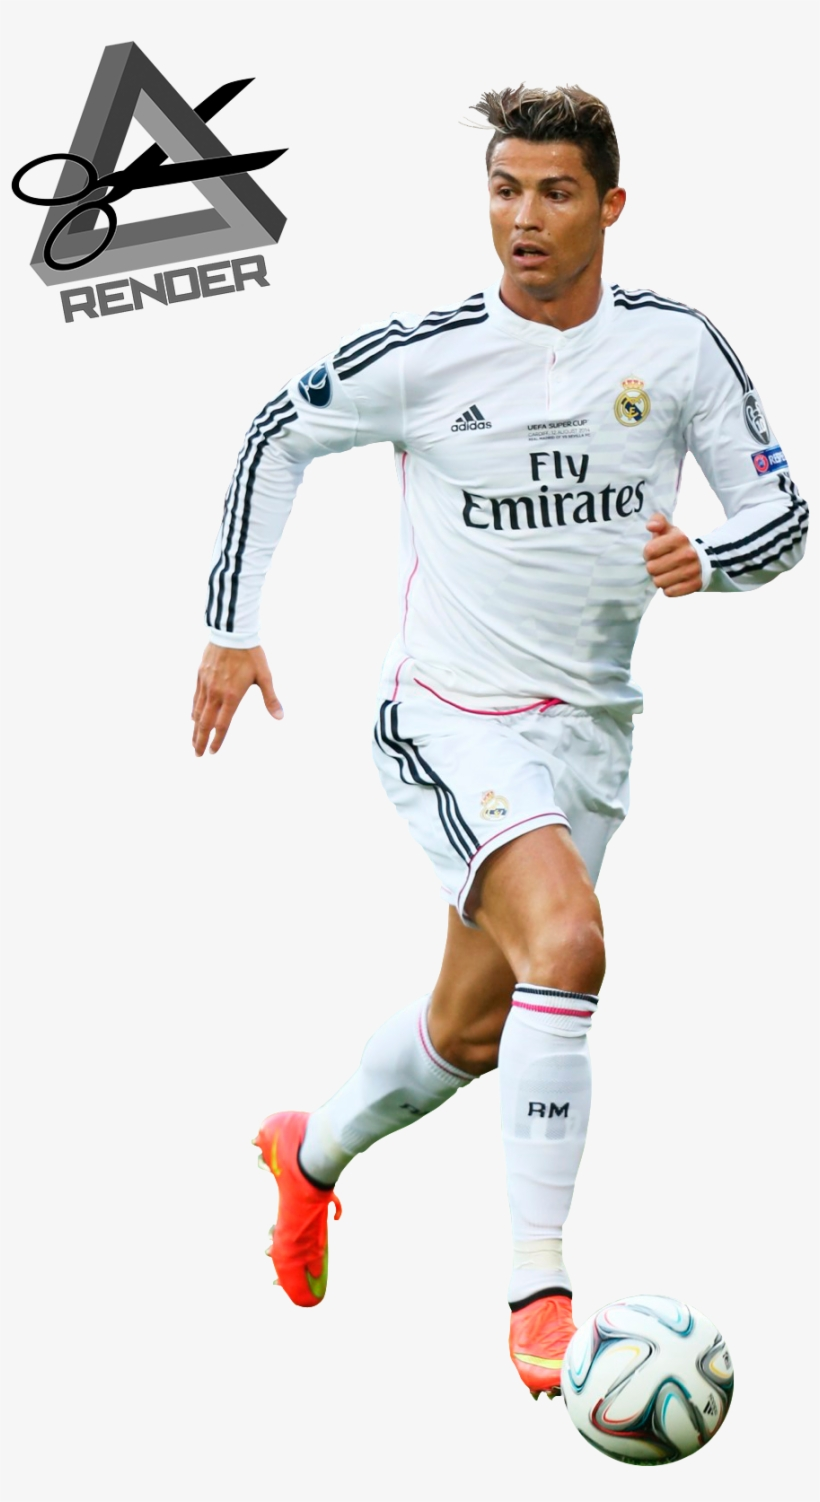 Real Madrid Iphone Wallpaper Ronaldo Hd Images 2015 Transparent Png 1185x1703 Free Download On Nicepng